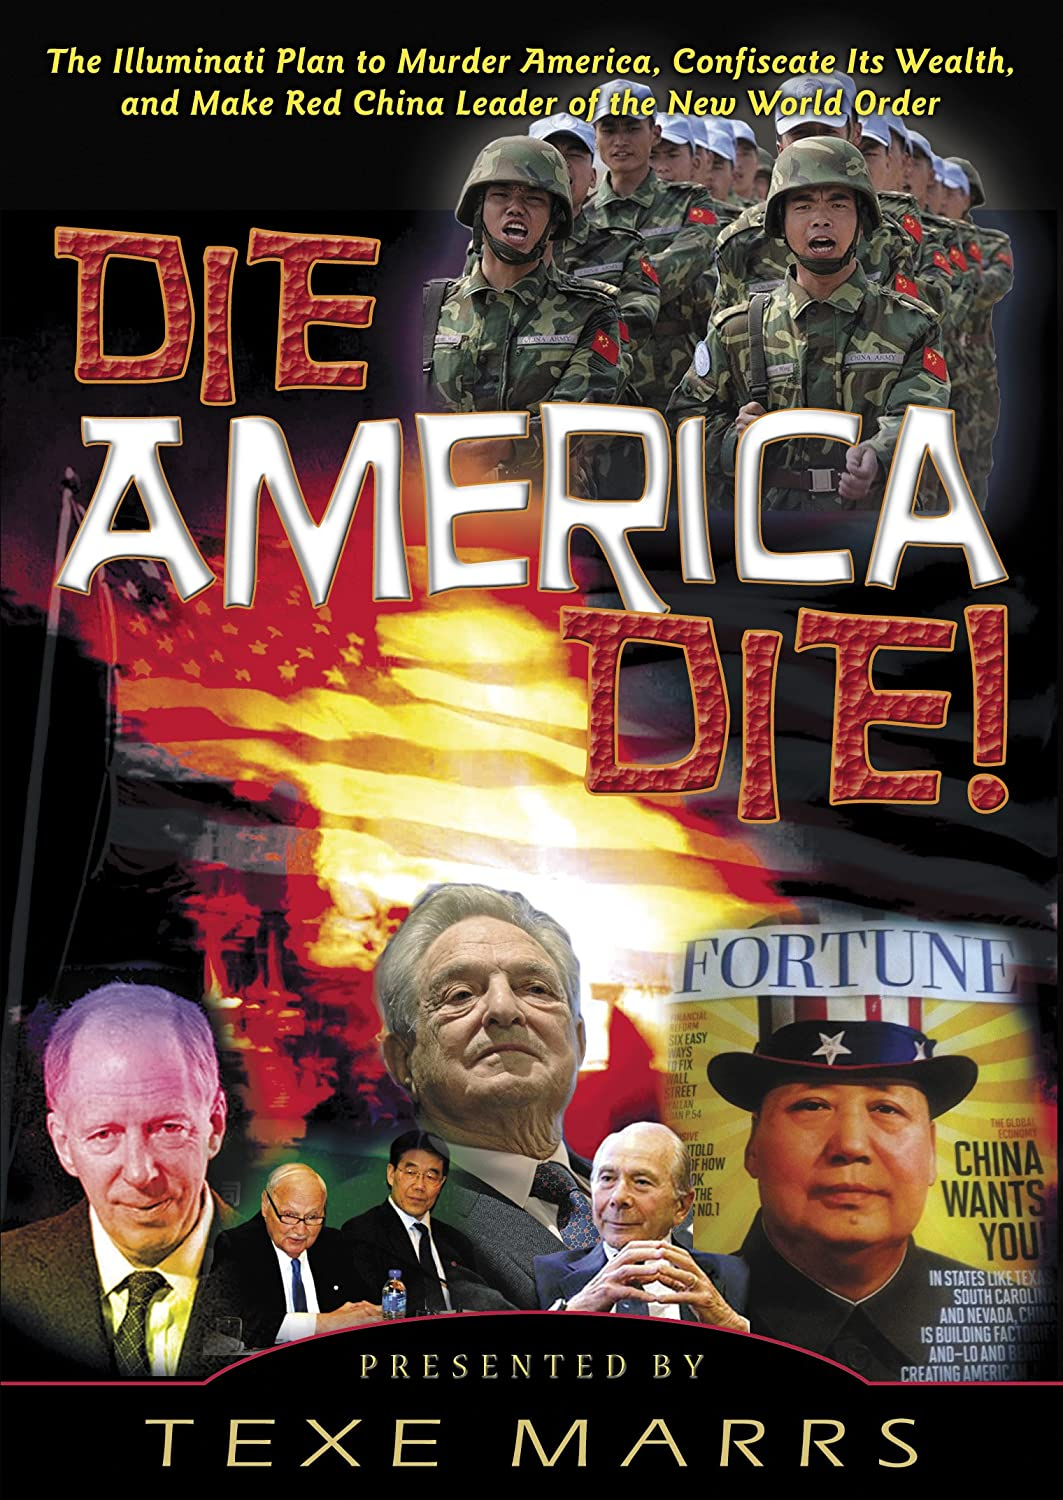 Amazon die america die the illuminati plan to murder the illuminati plan to murder america confiscate its wealth and make red china leader of the new world order texe marrs movies tv buycottarizona